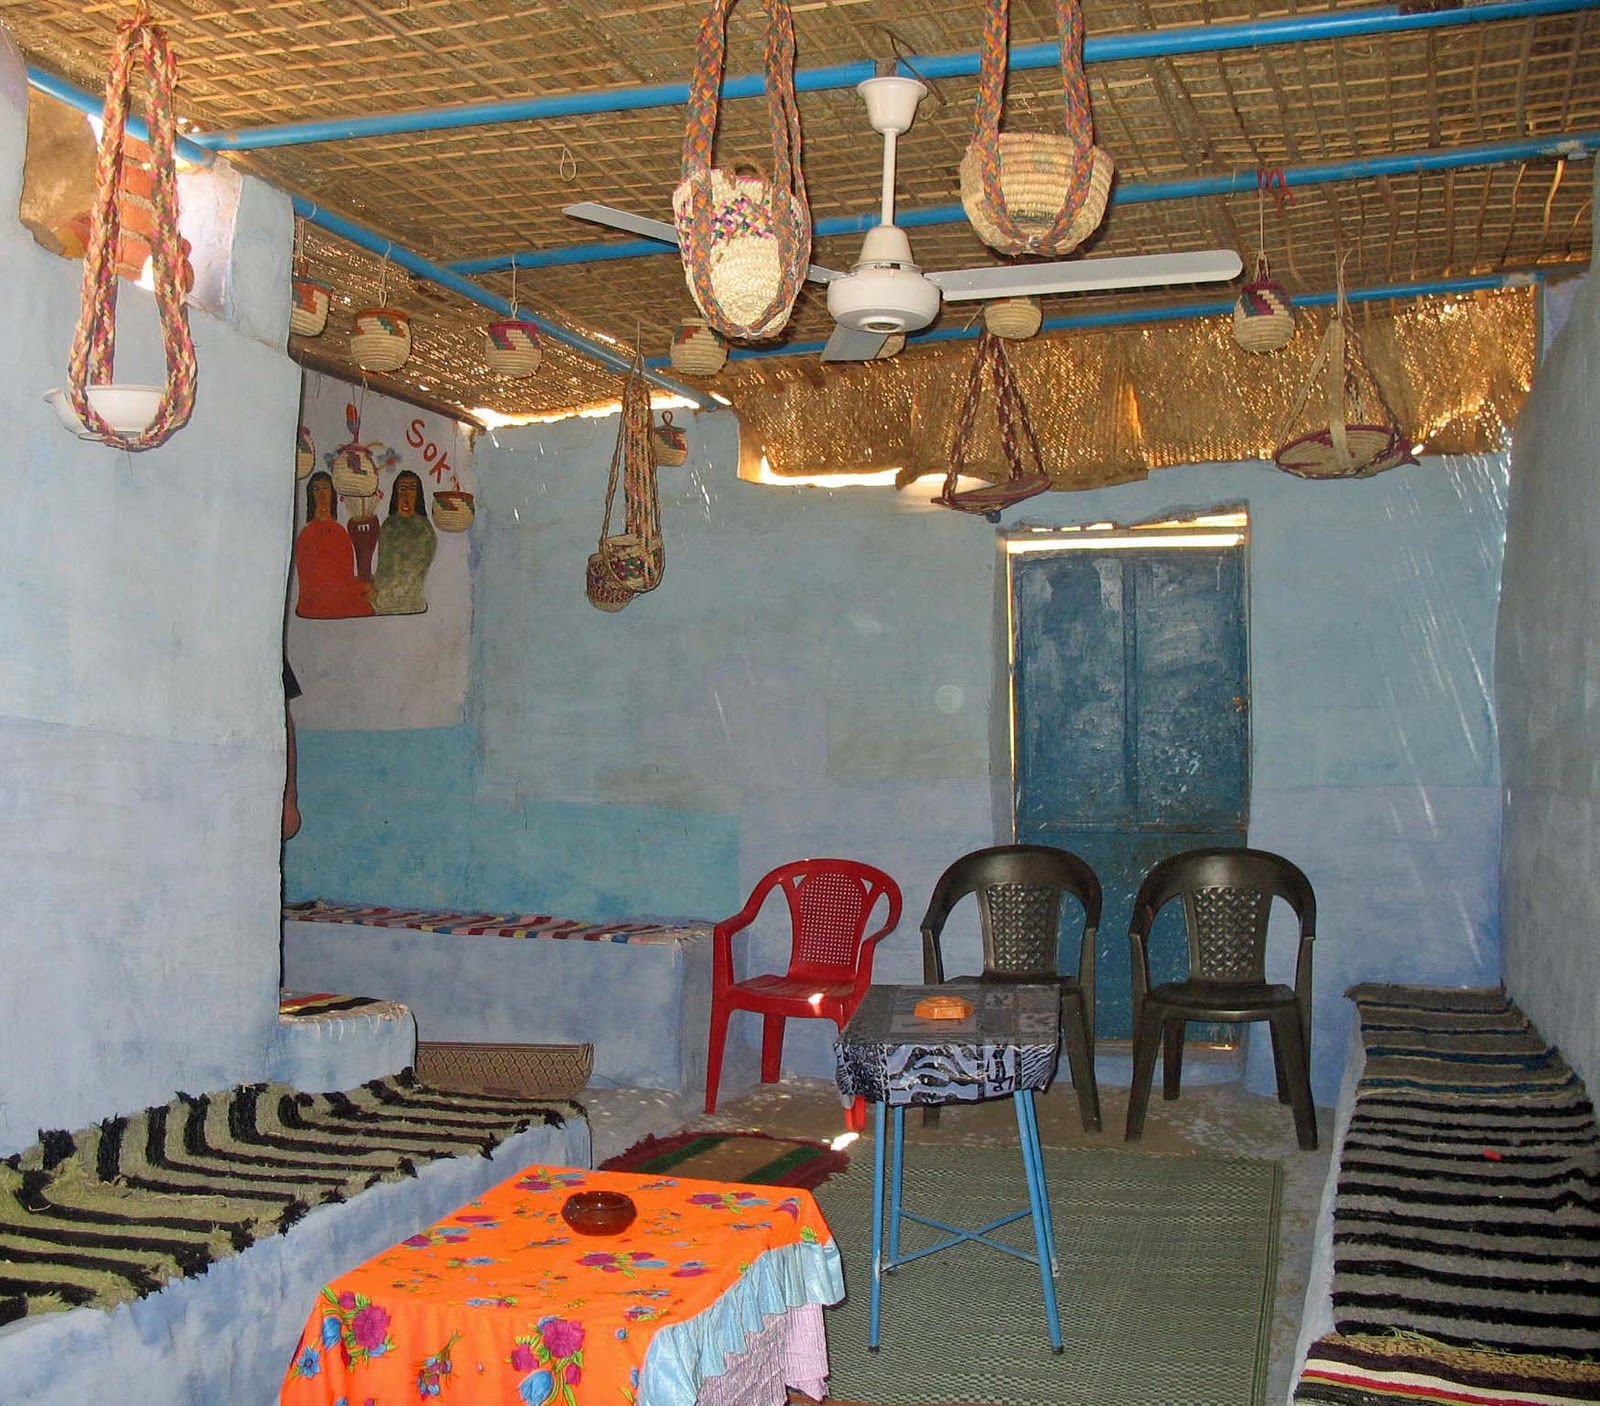 Stock Pictures: Nubian Village of Egypt